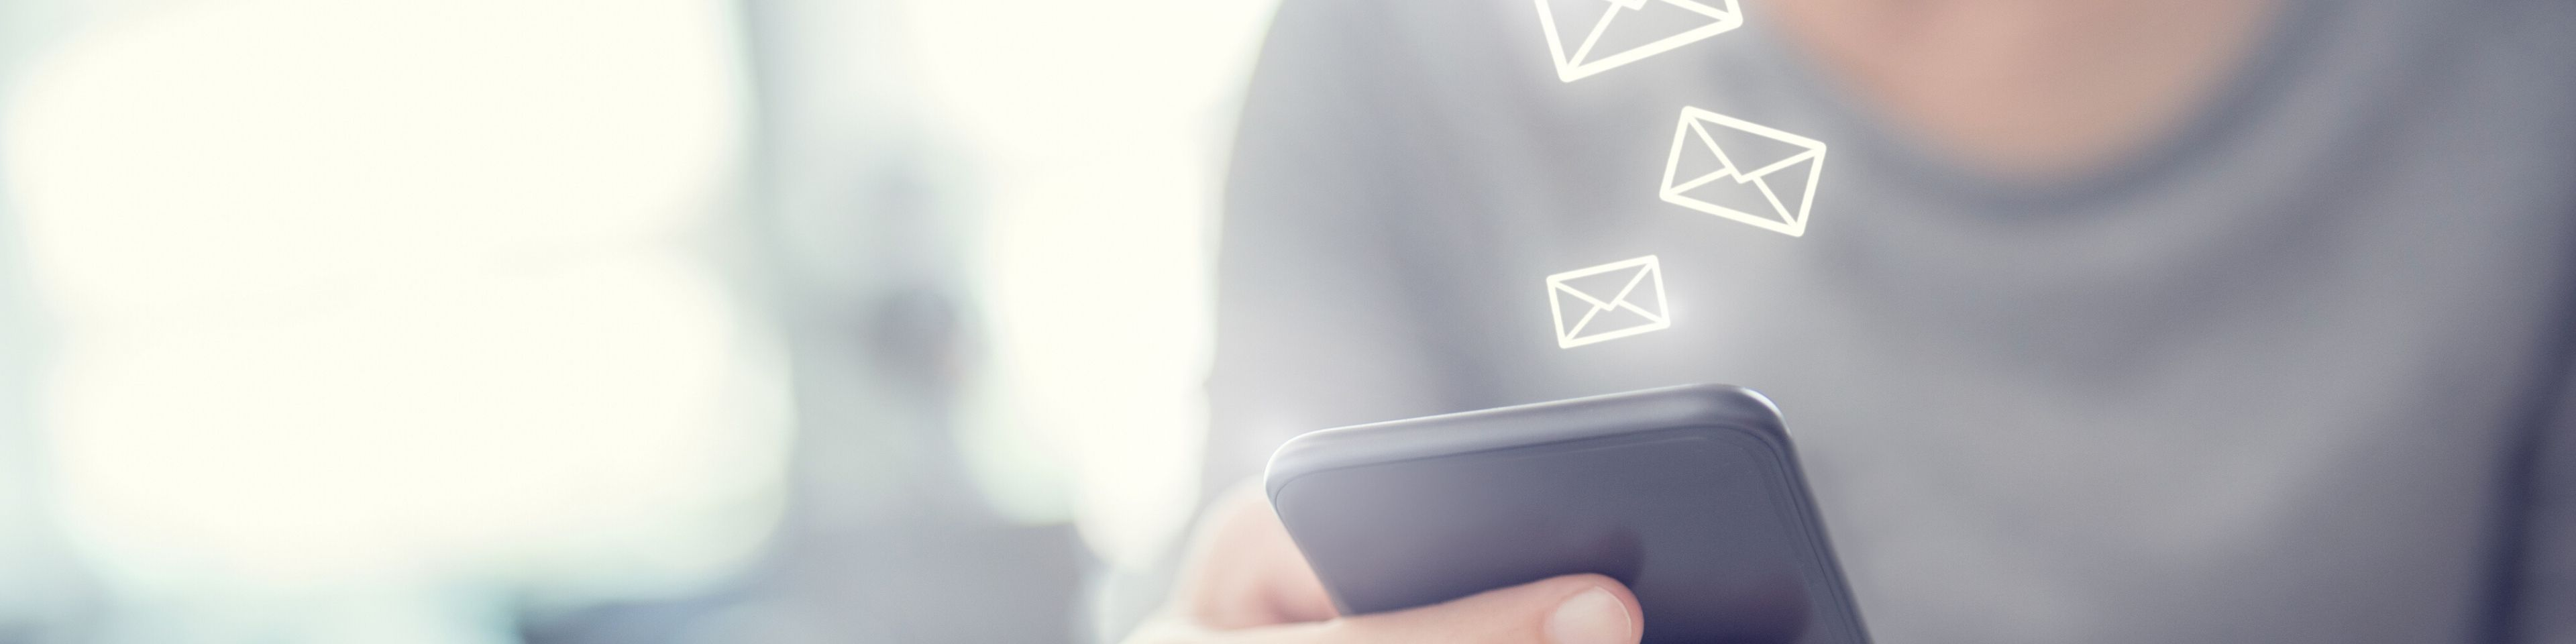 Woman hand using mobile smartphone with email